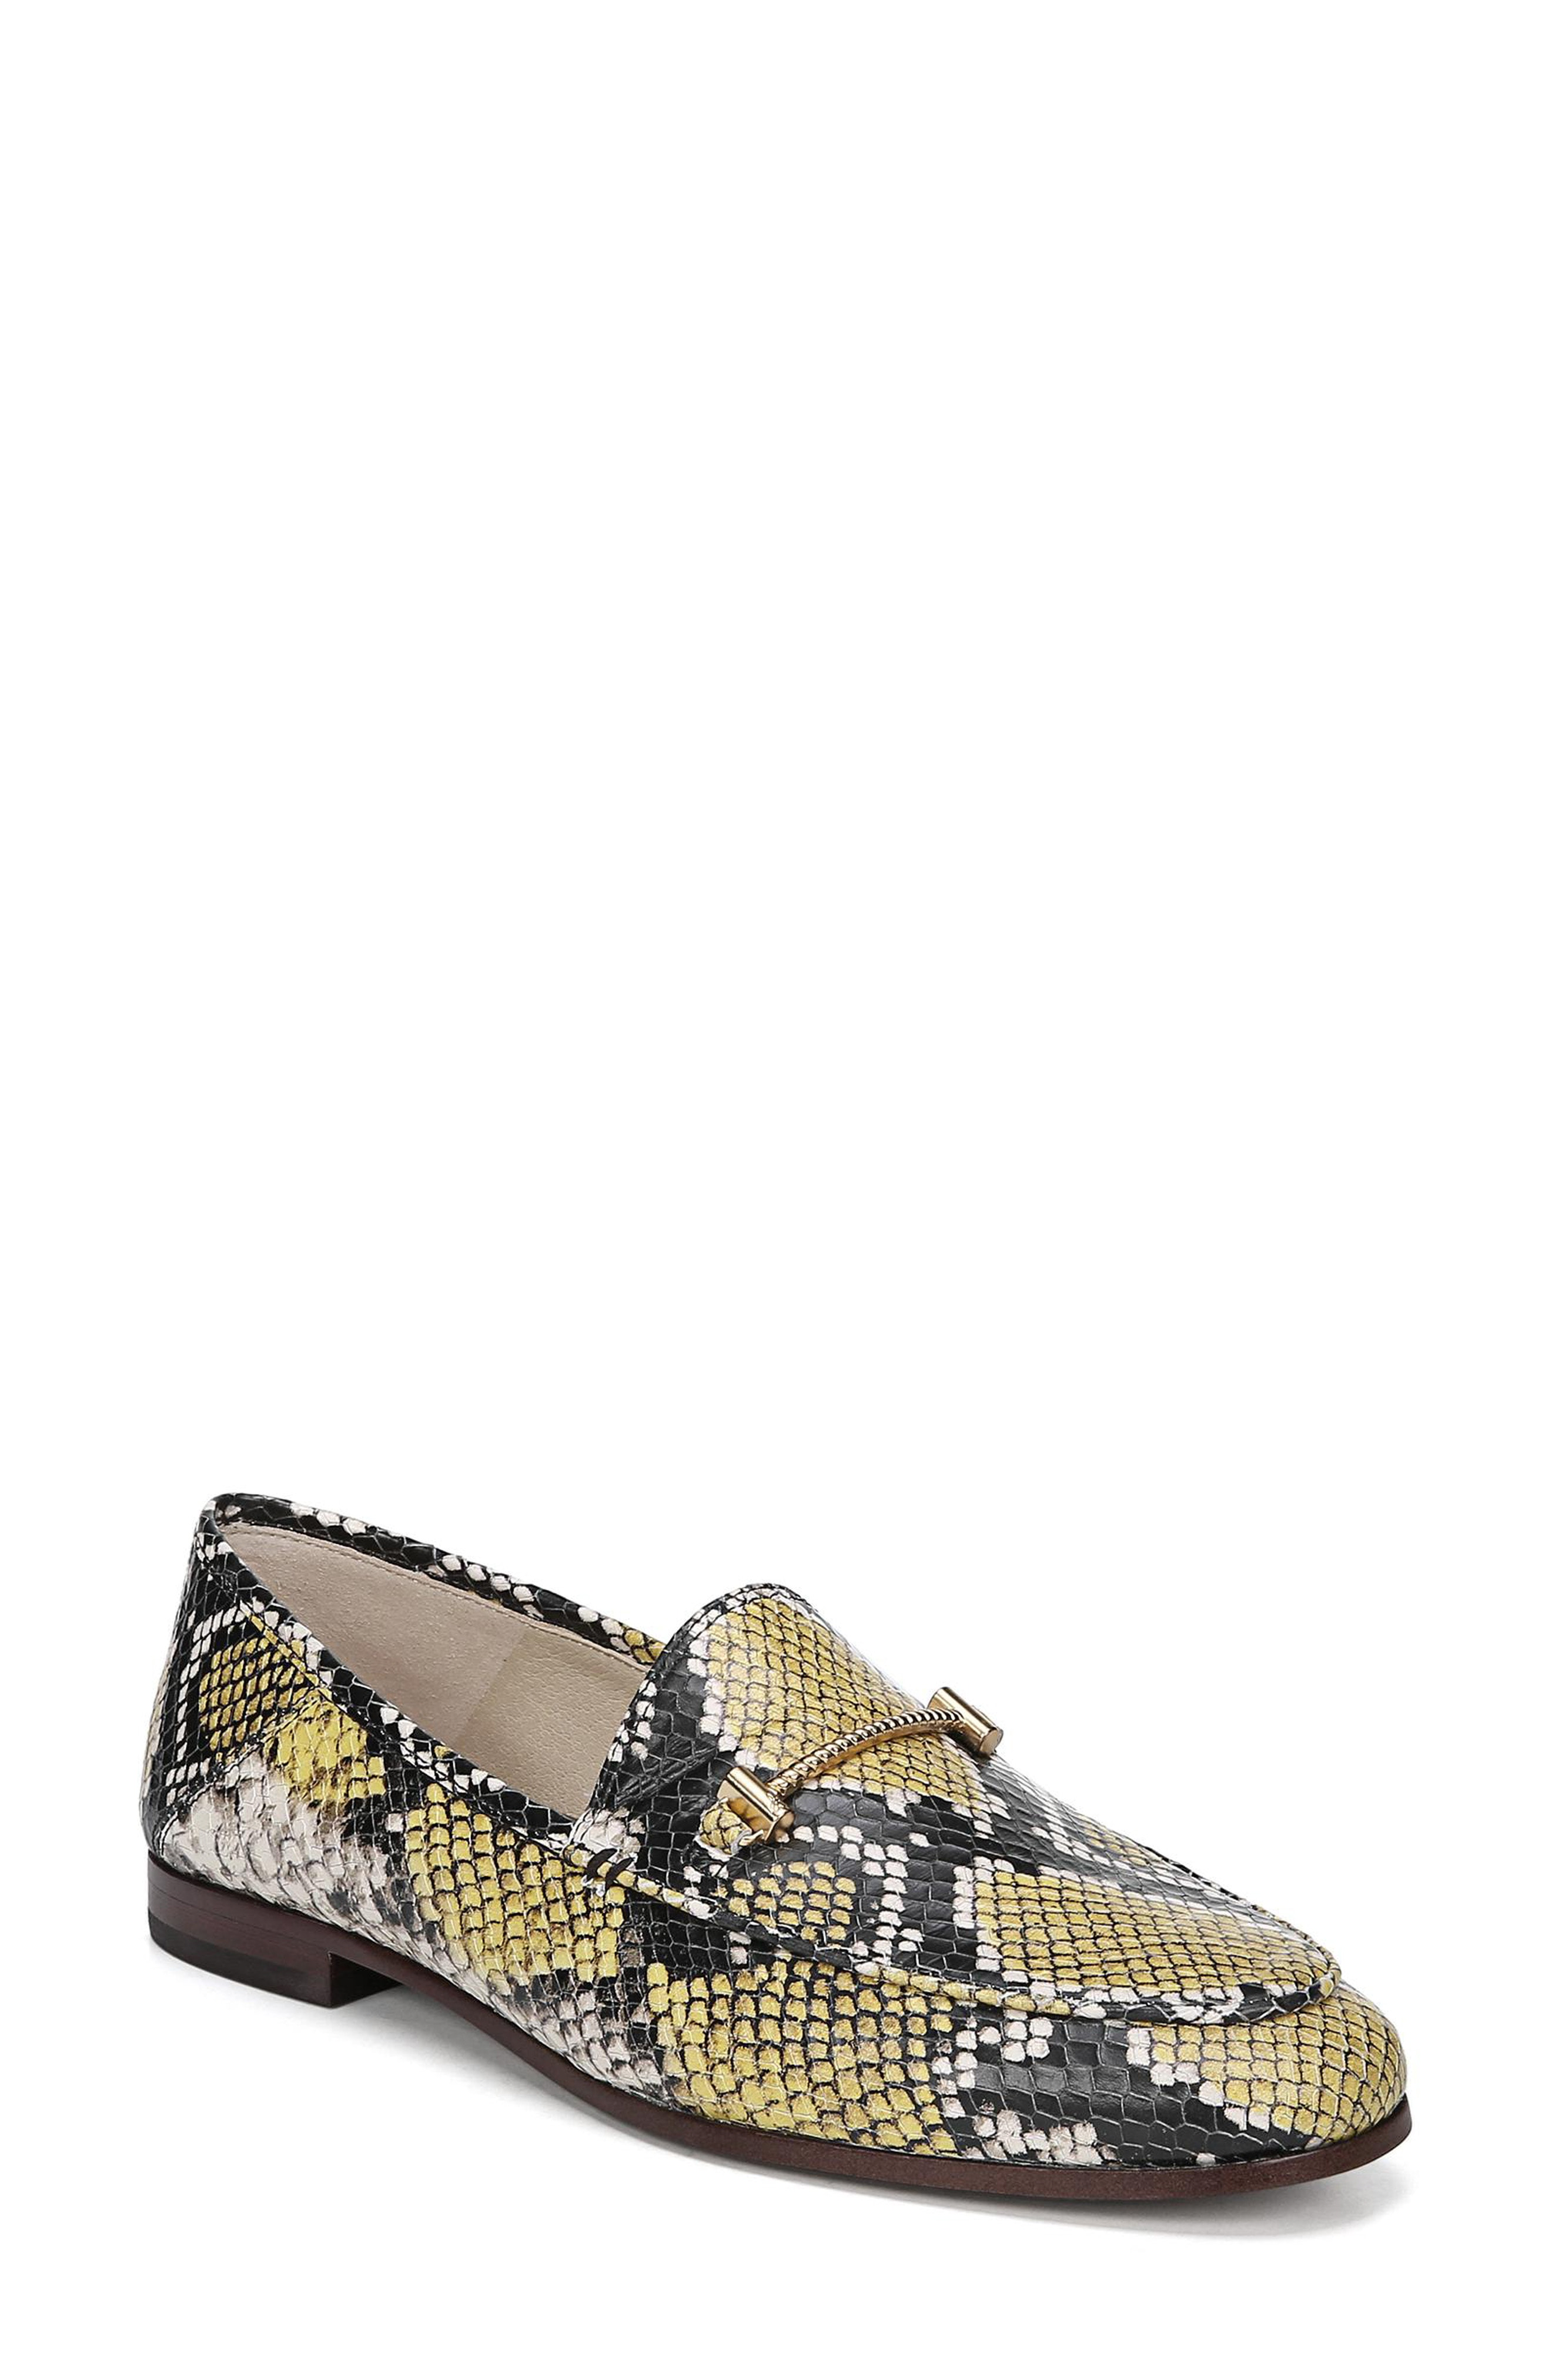 034eb16c1 Sam Edelman Lior Loafer In Yellow Snake Print Leather